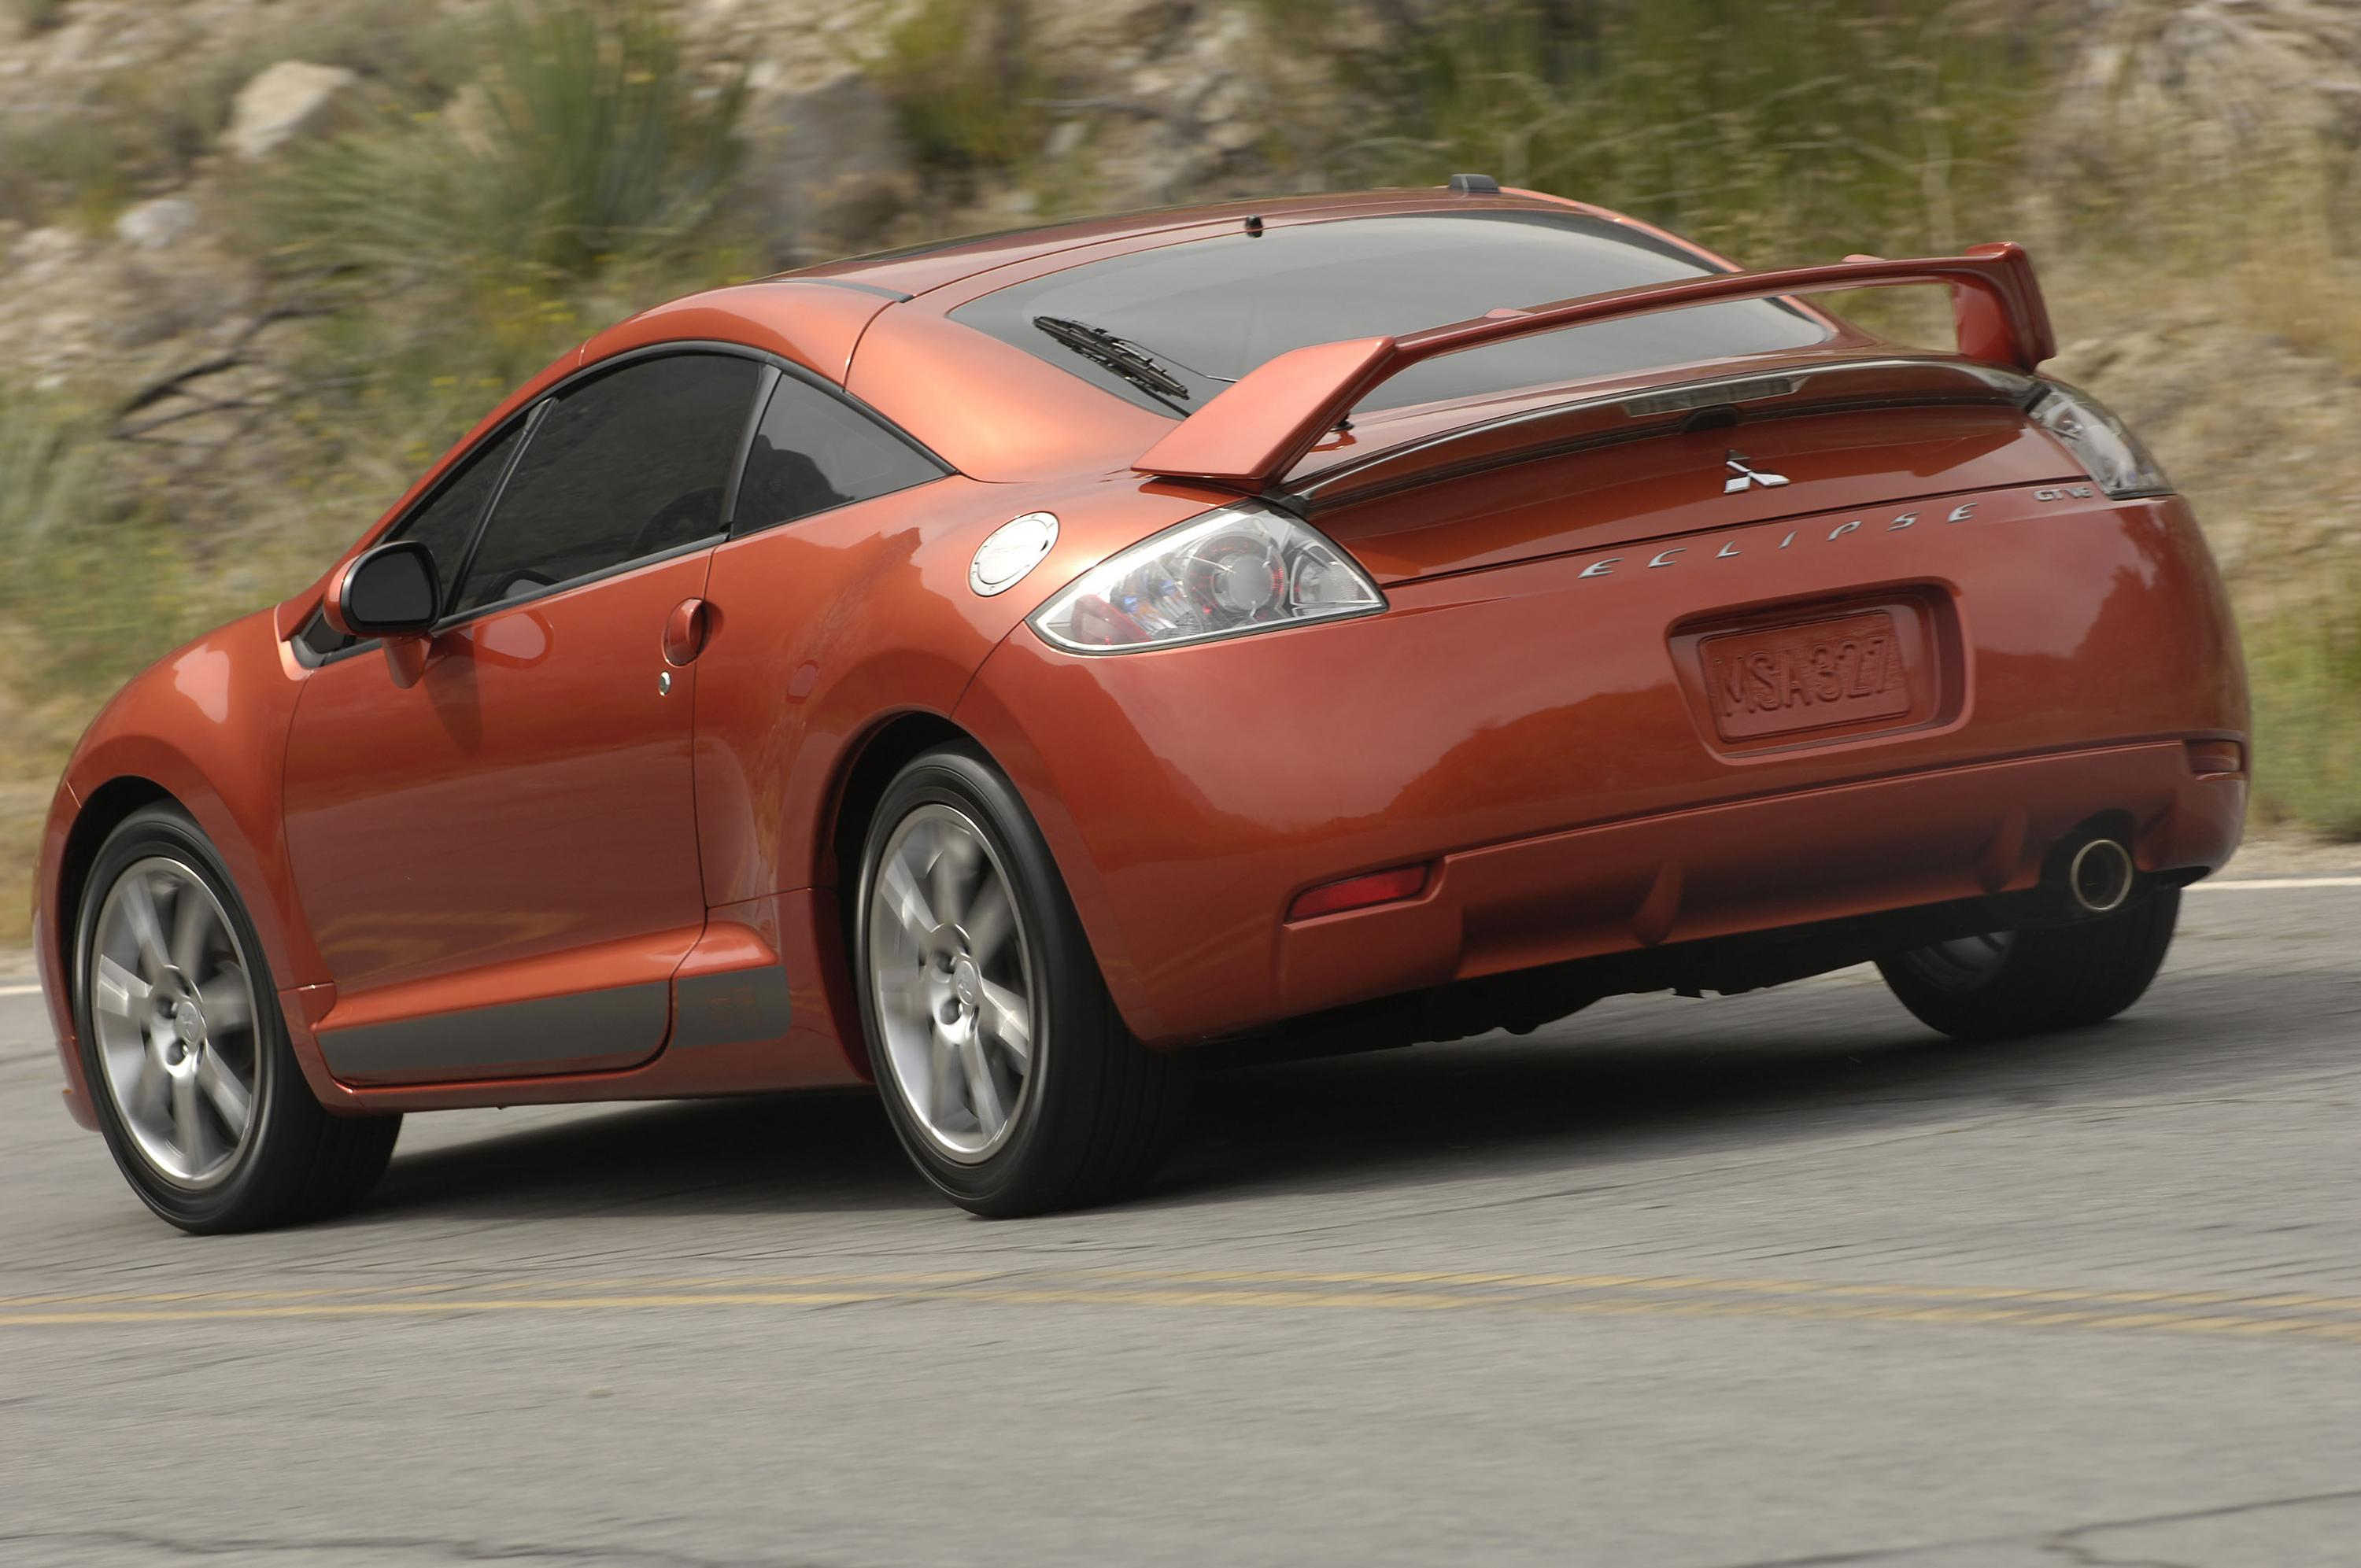 2008 Mitsubishi Eclipse Review - Top Speed